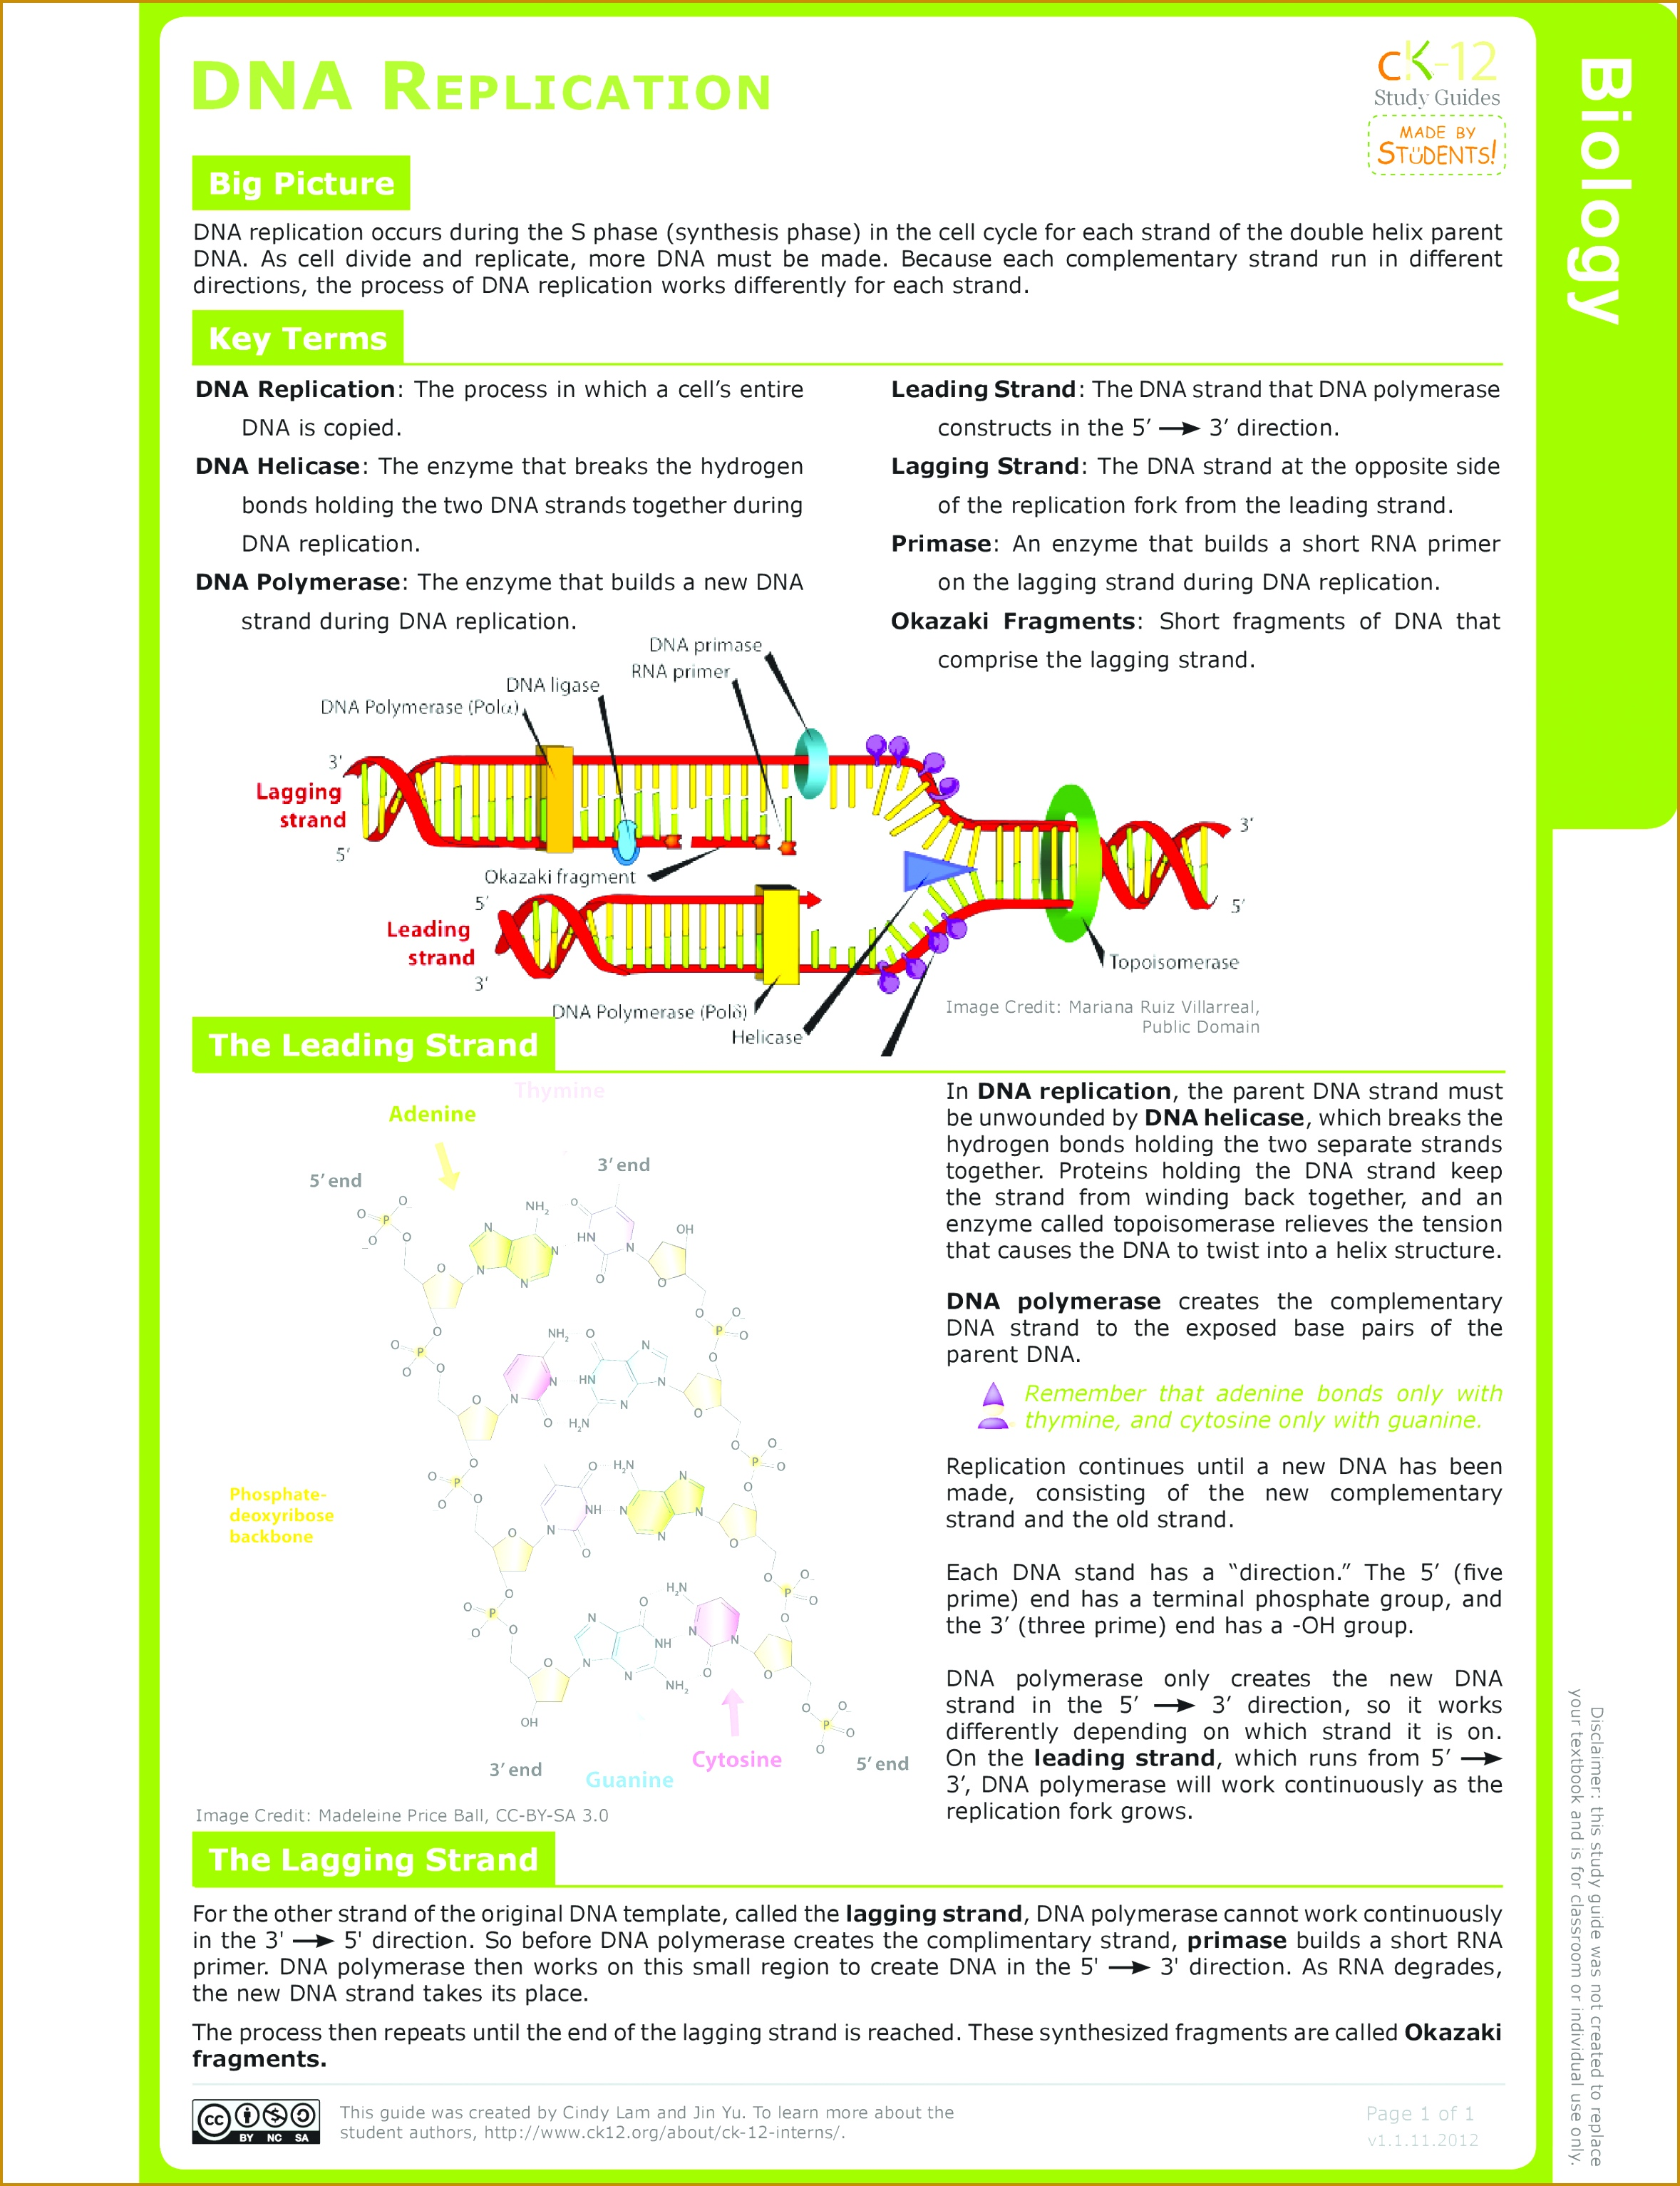 5 Dna Base Pairing Worksheet Answers | FabTemplatez